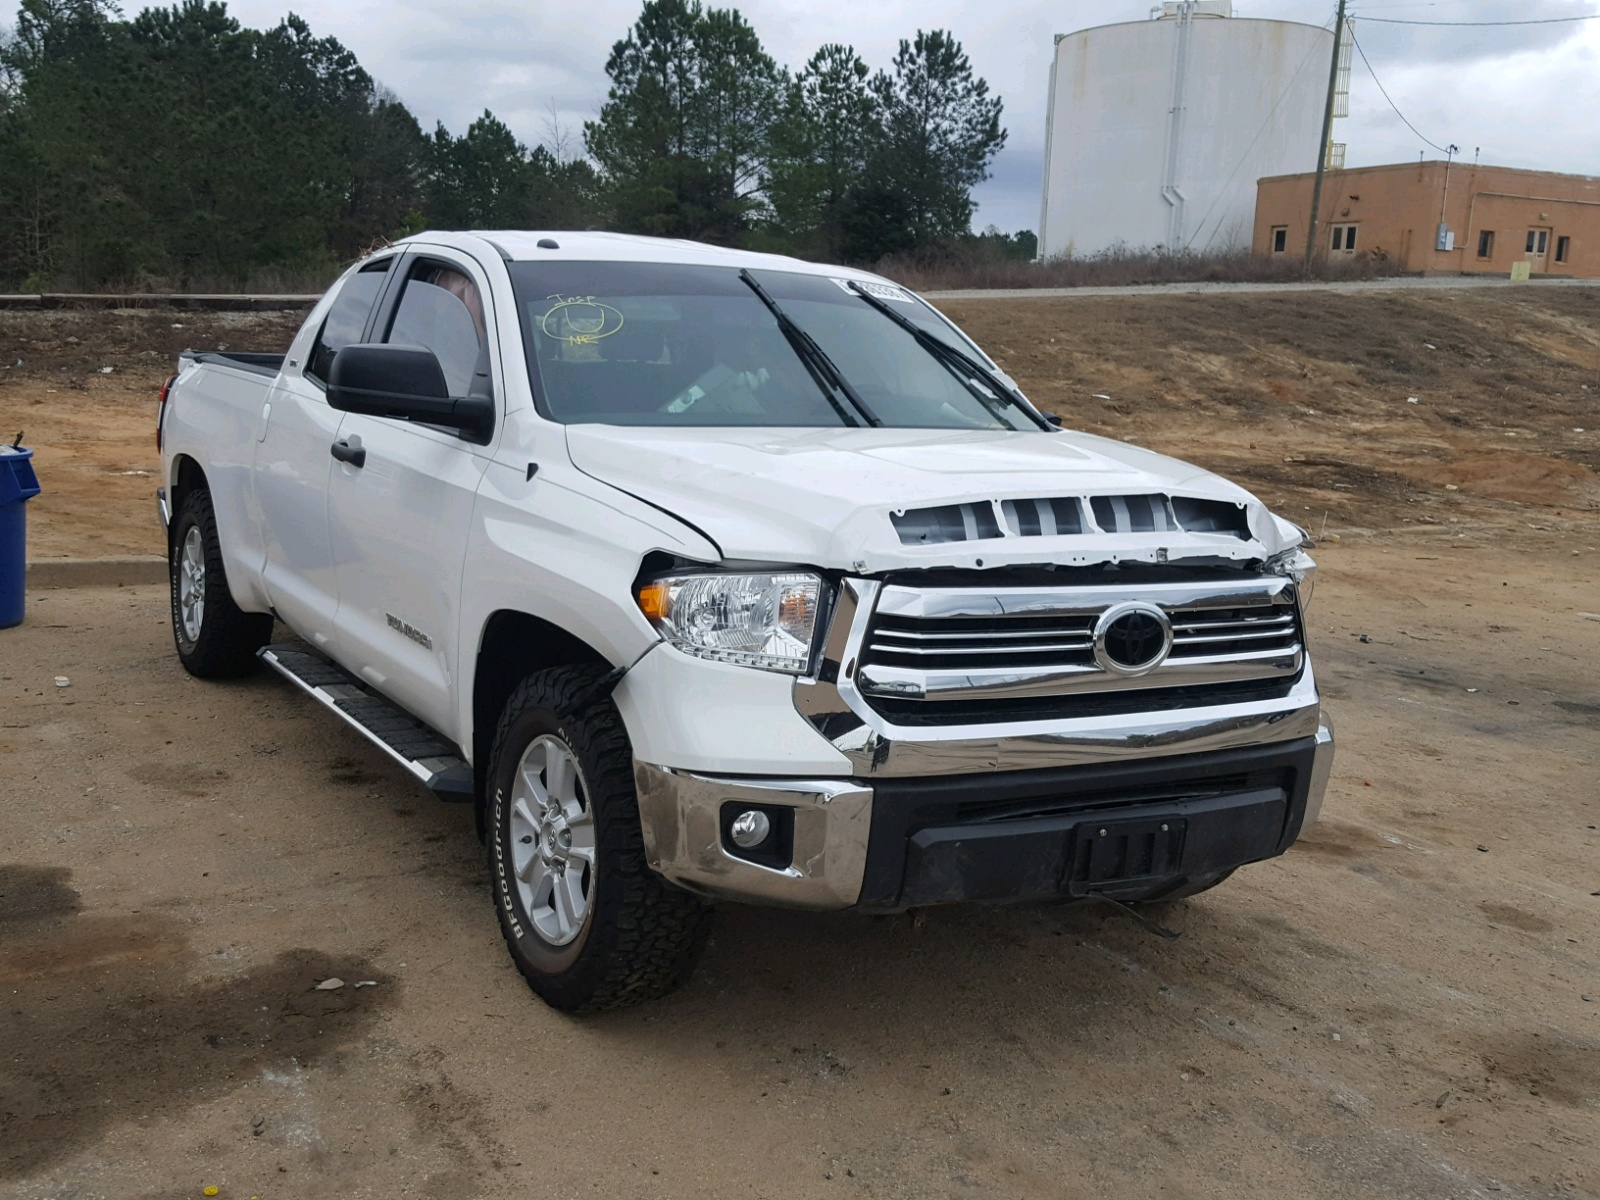 Auto Auction Ended on VIN: 5TFAW5F16HX624565 2017 TOYOTA TUNDRA CRE in CO - DENVER SOUTH